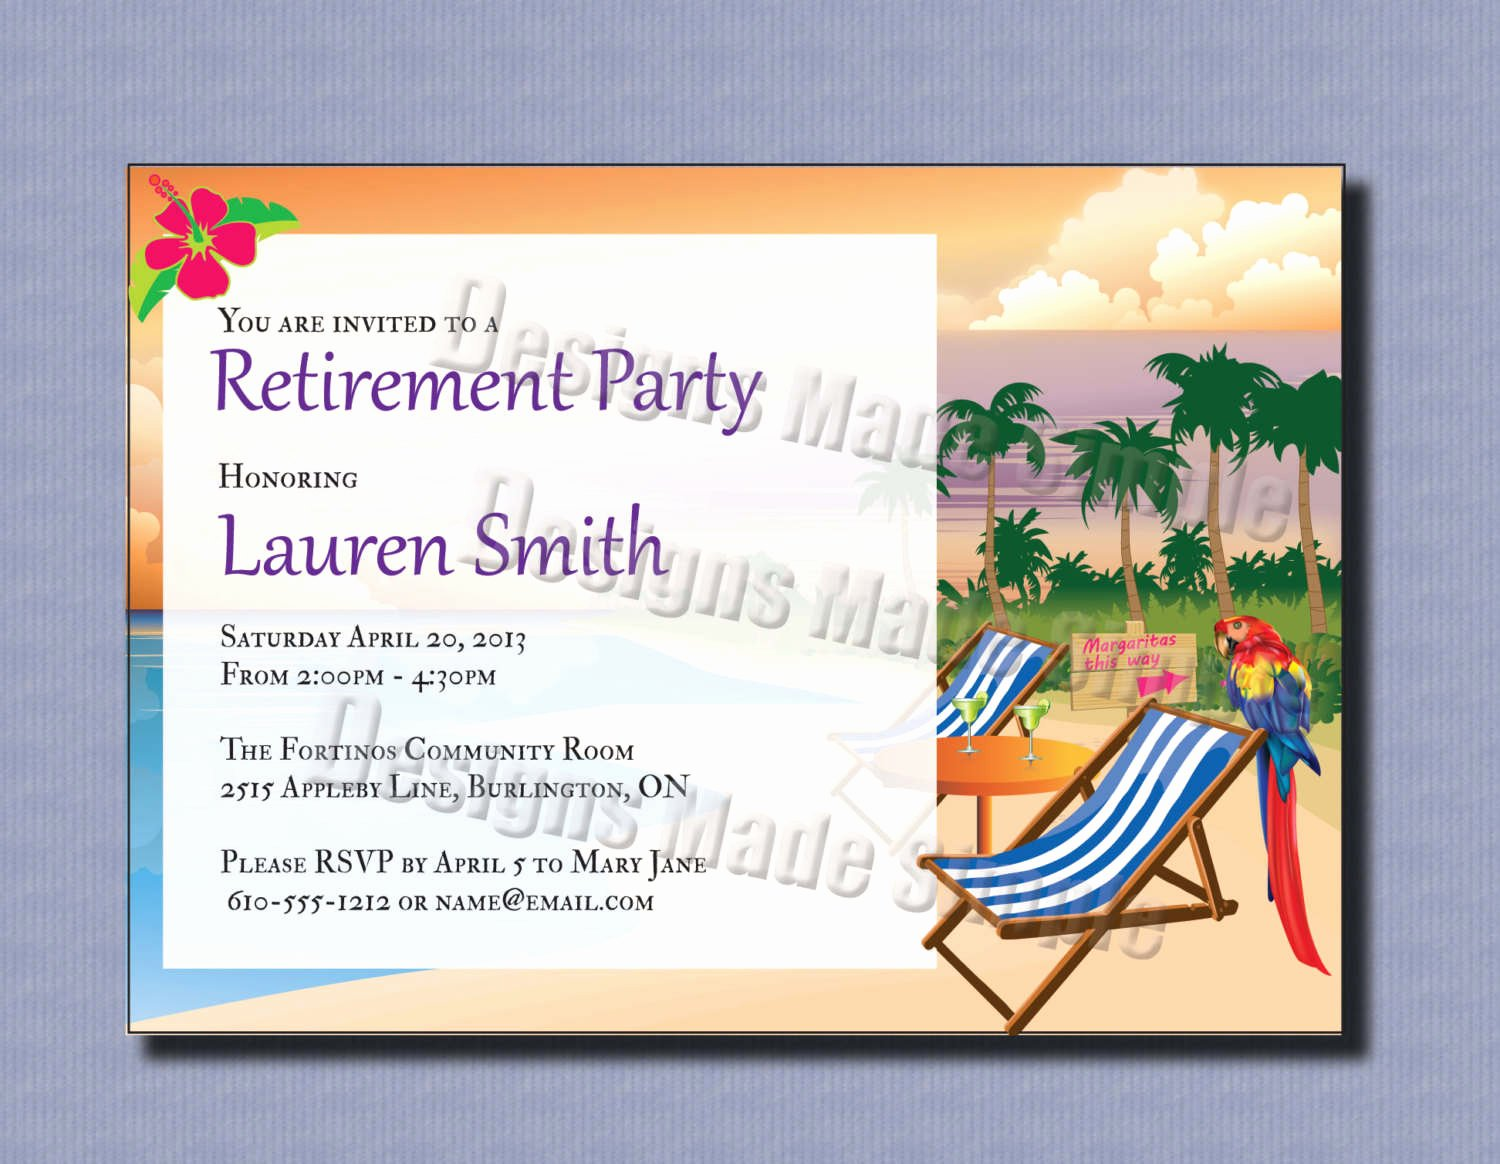 Retirement Party Invite Template Luxury Retirement Party Invitations Template